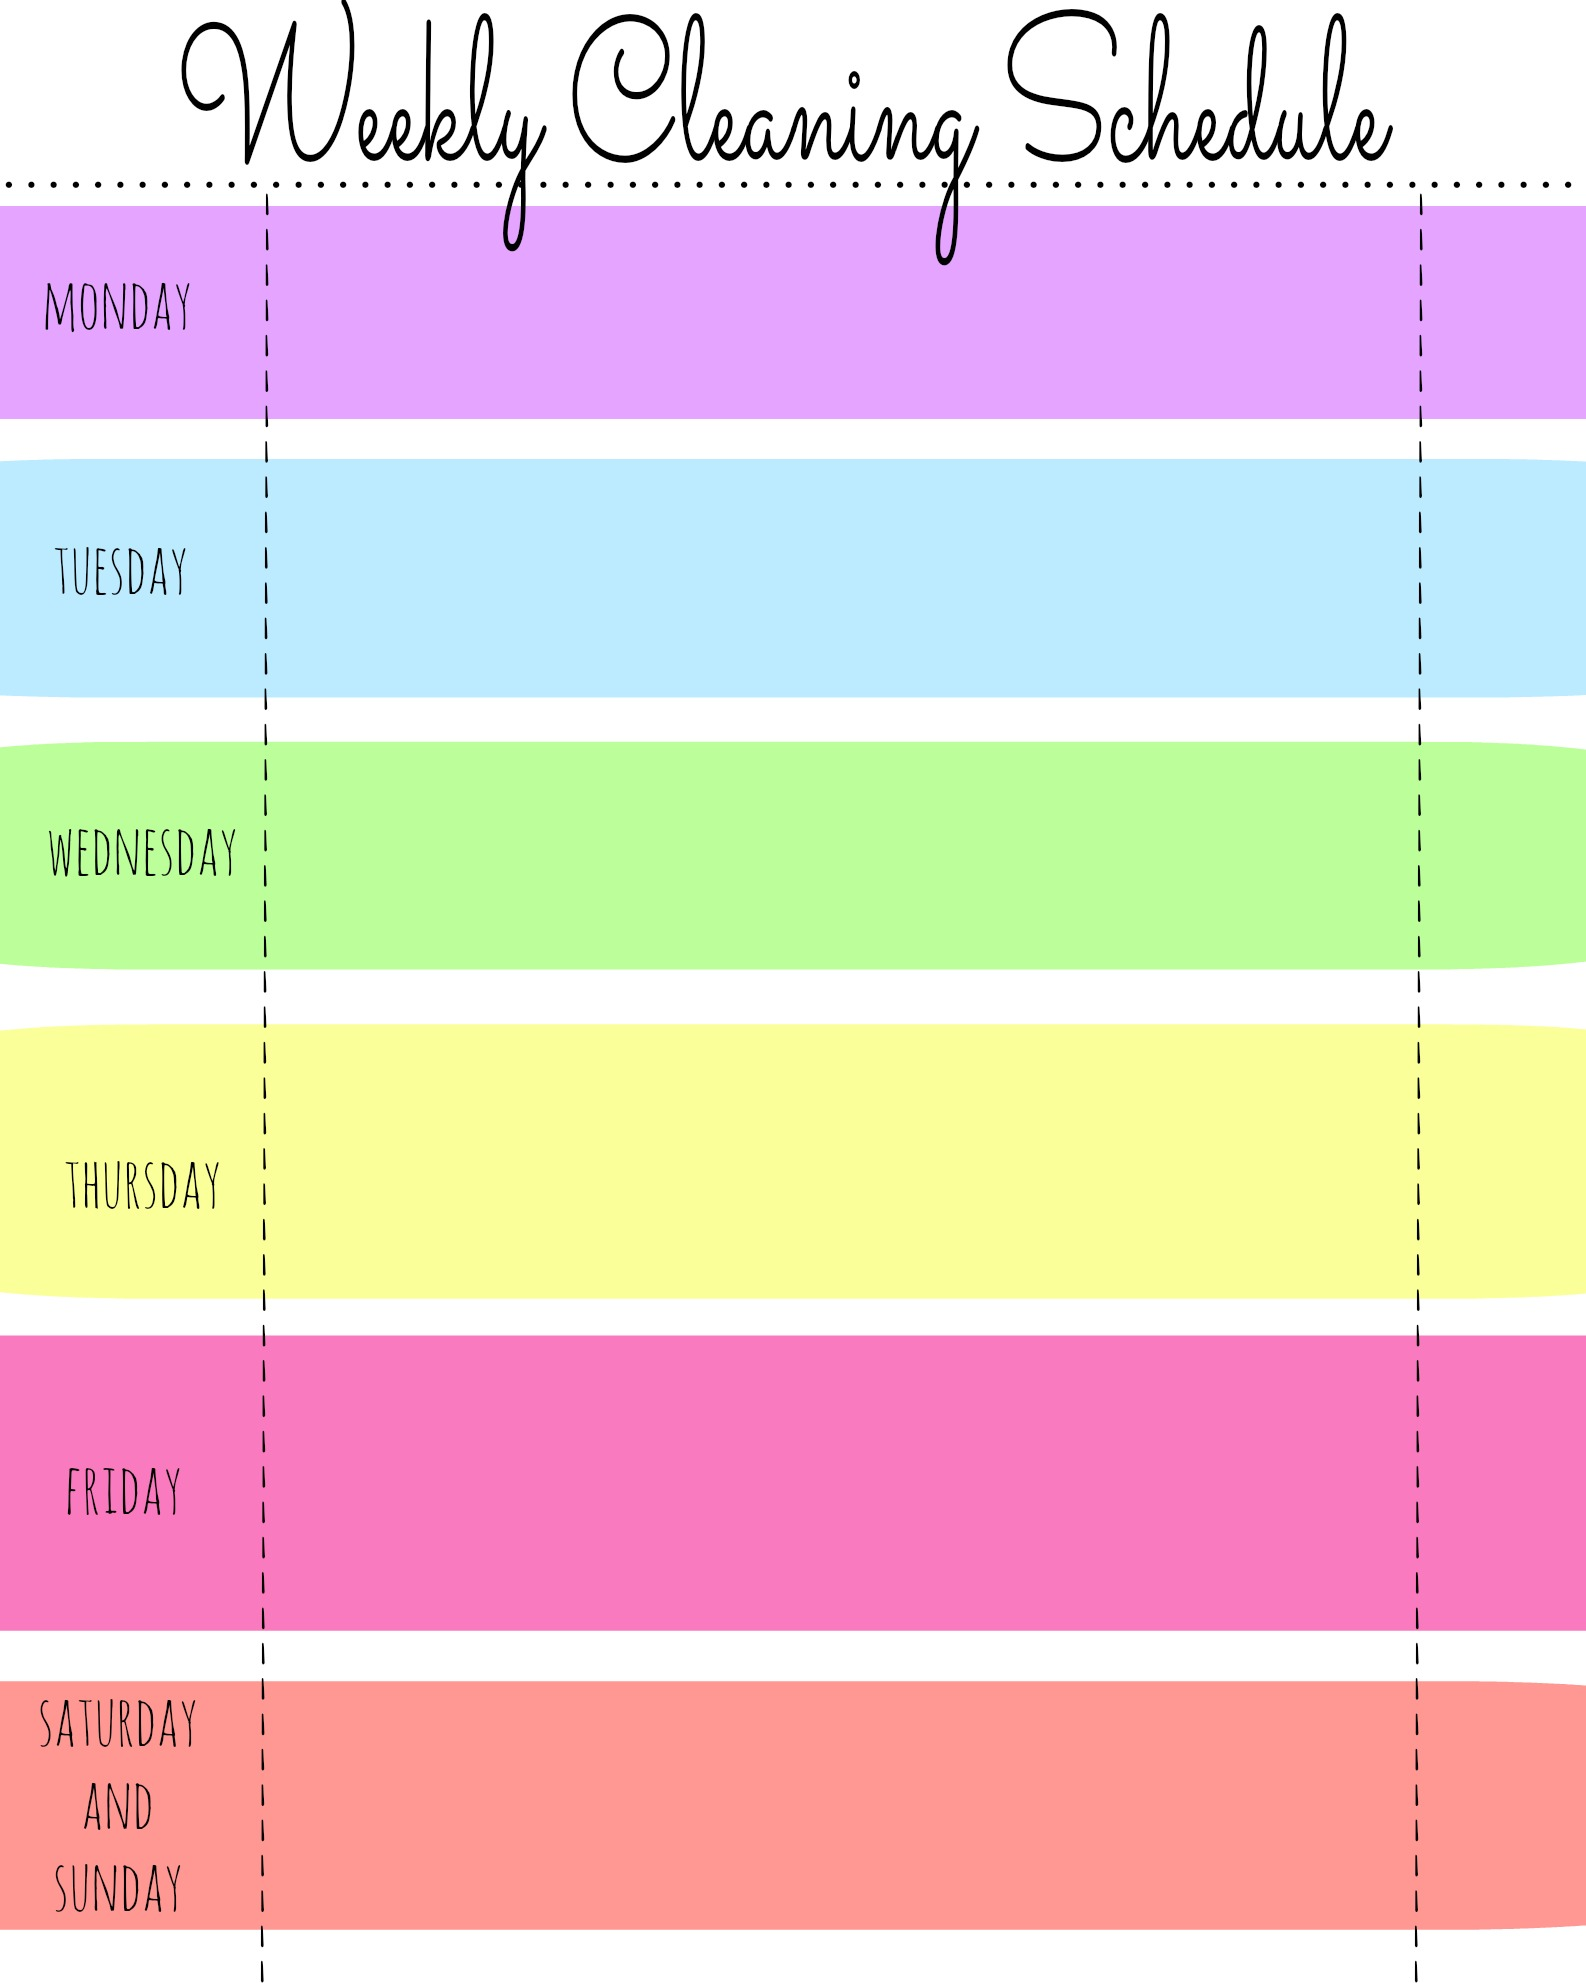 5 Images of Blank Printable Weekly Cleaning Schedule